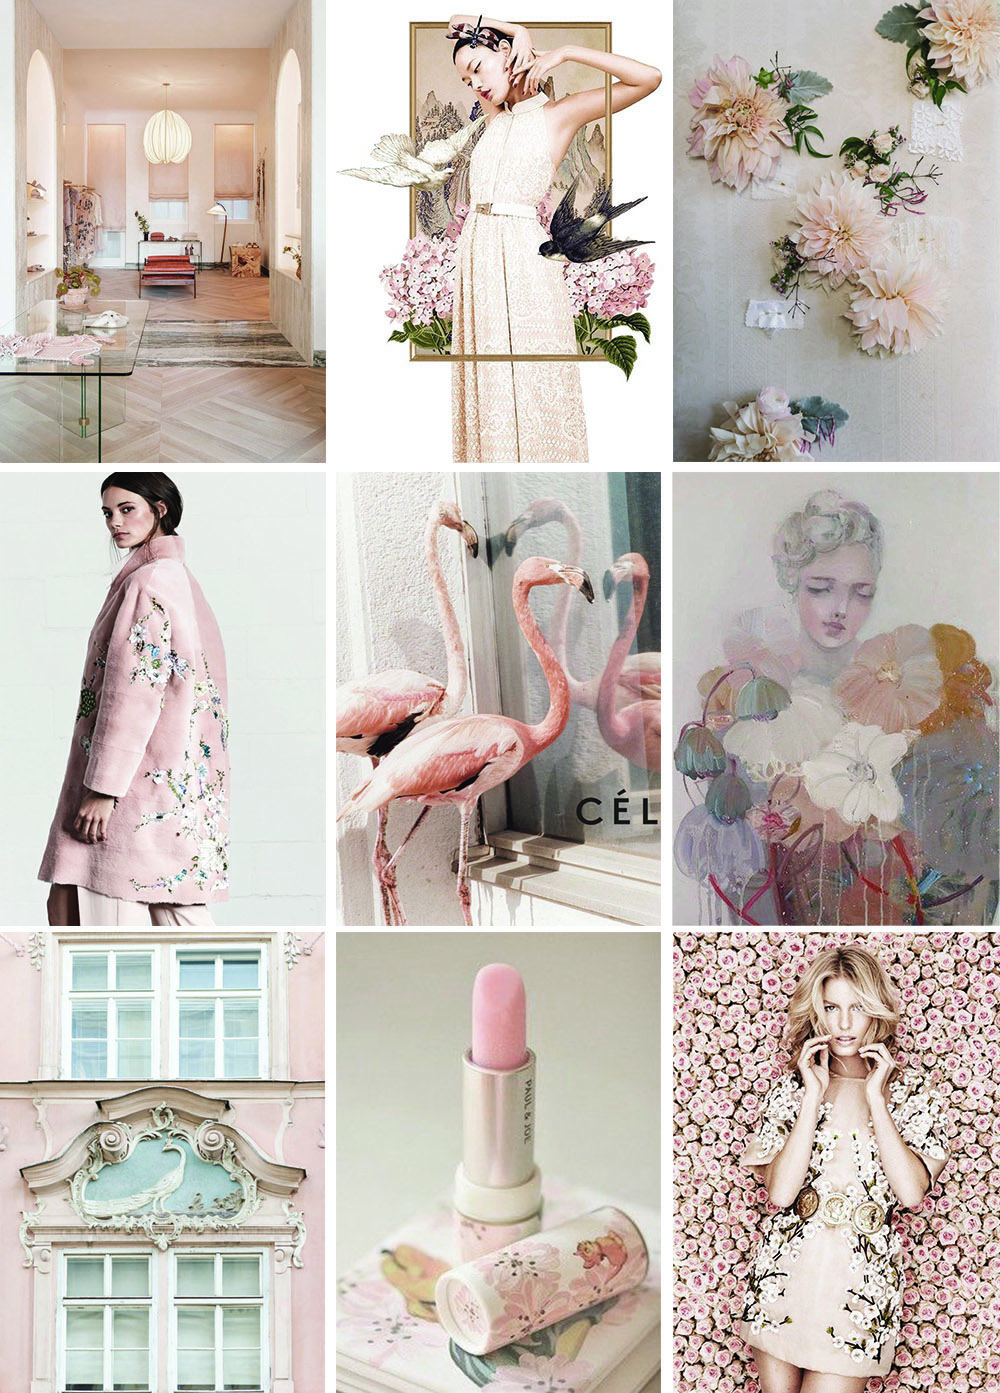 {Image credit from left to right, top to bottom:  Image 1 : Interior,  Image 2 : Graphic Design,  Image 3 : Flowers,  Image 4 : Fashion,  Image 5 : Animals,  Image 6 : Art,  Image 7 : Architecture,  Image 8 : Packaging,  Image 9 : Editorial.}